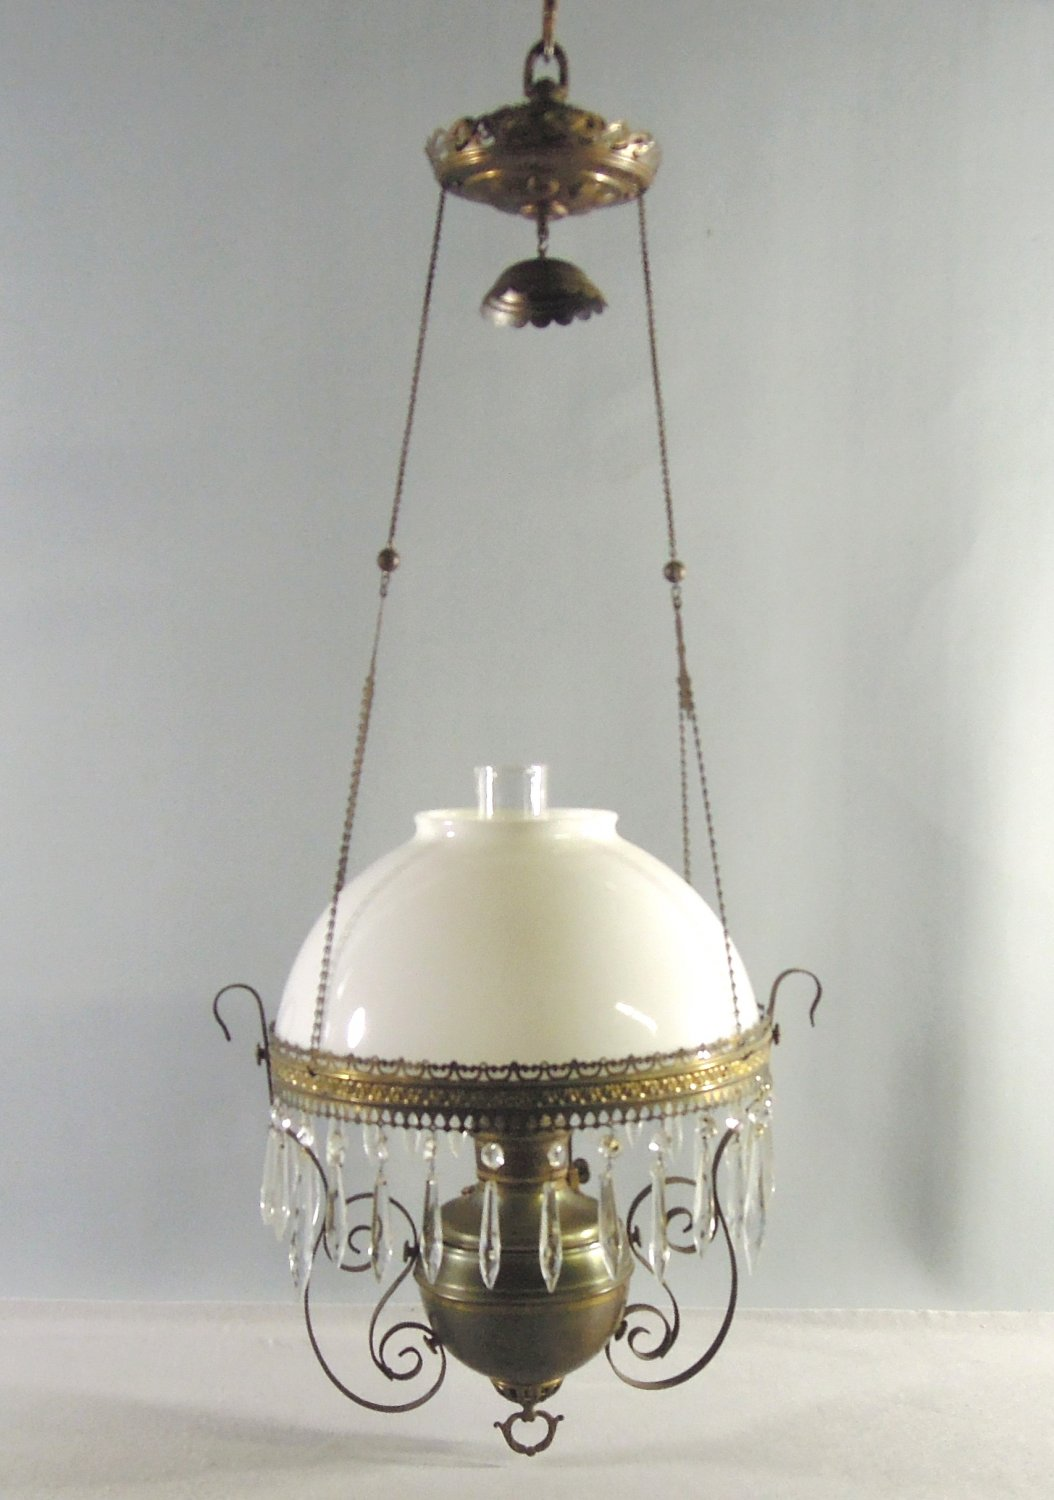 Antique Hanging Parlor Oil Lamp Royal Center Draft White Milk Glass Shade